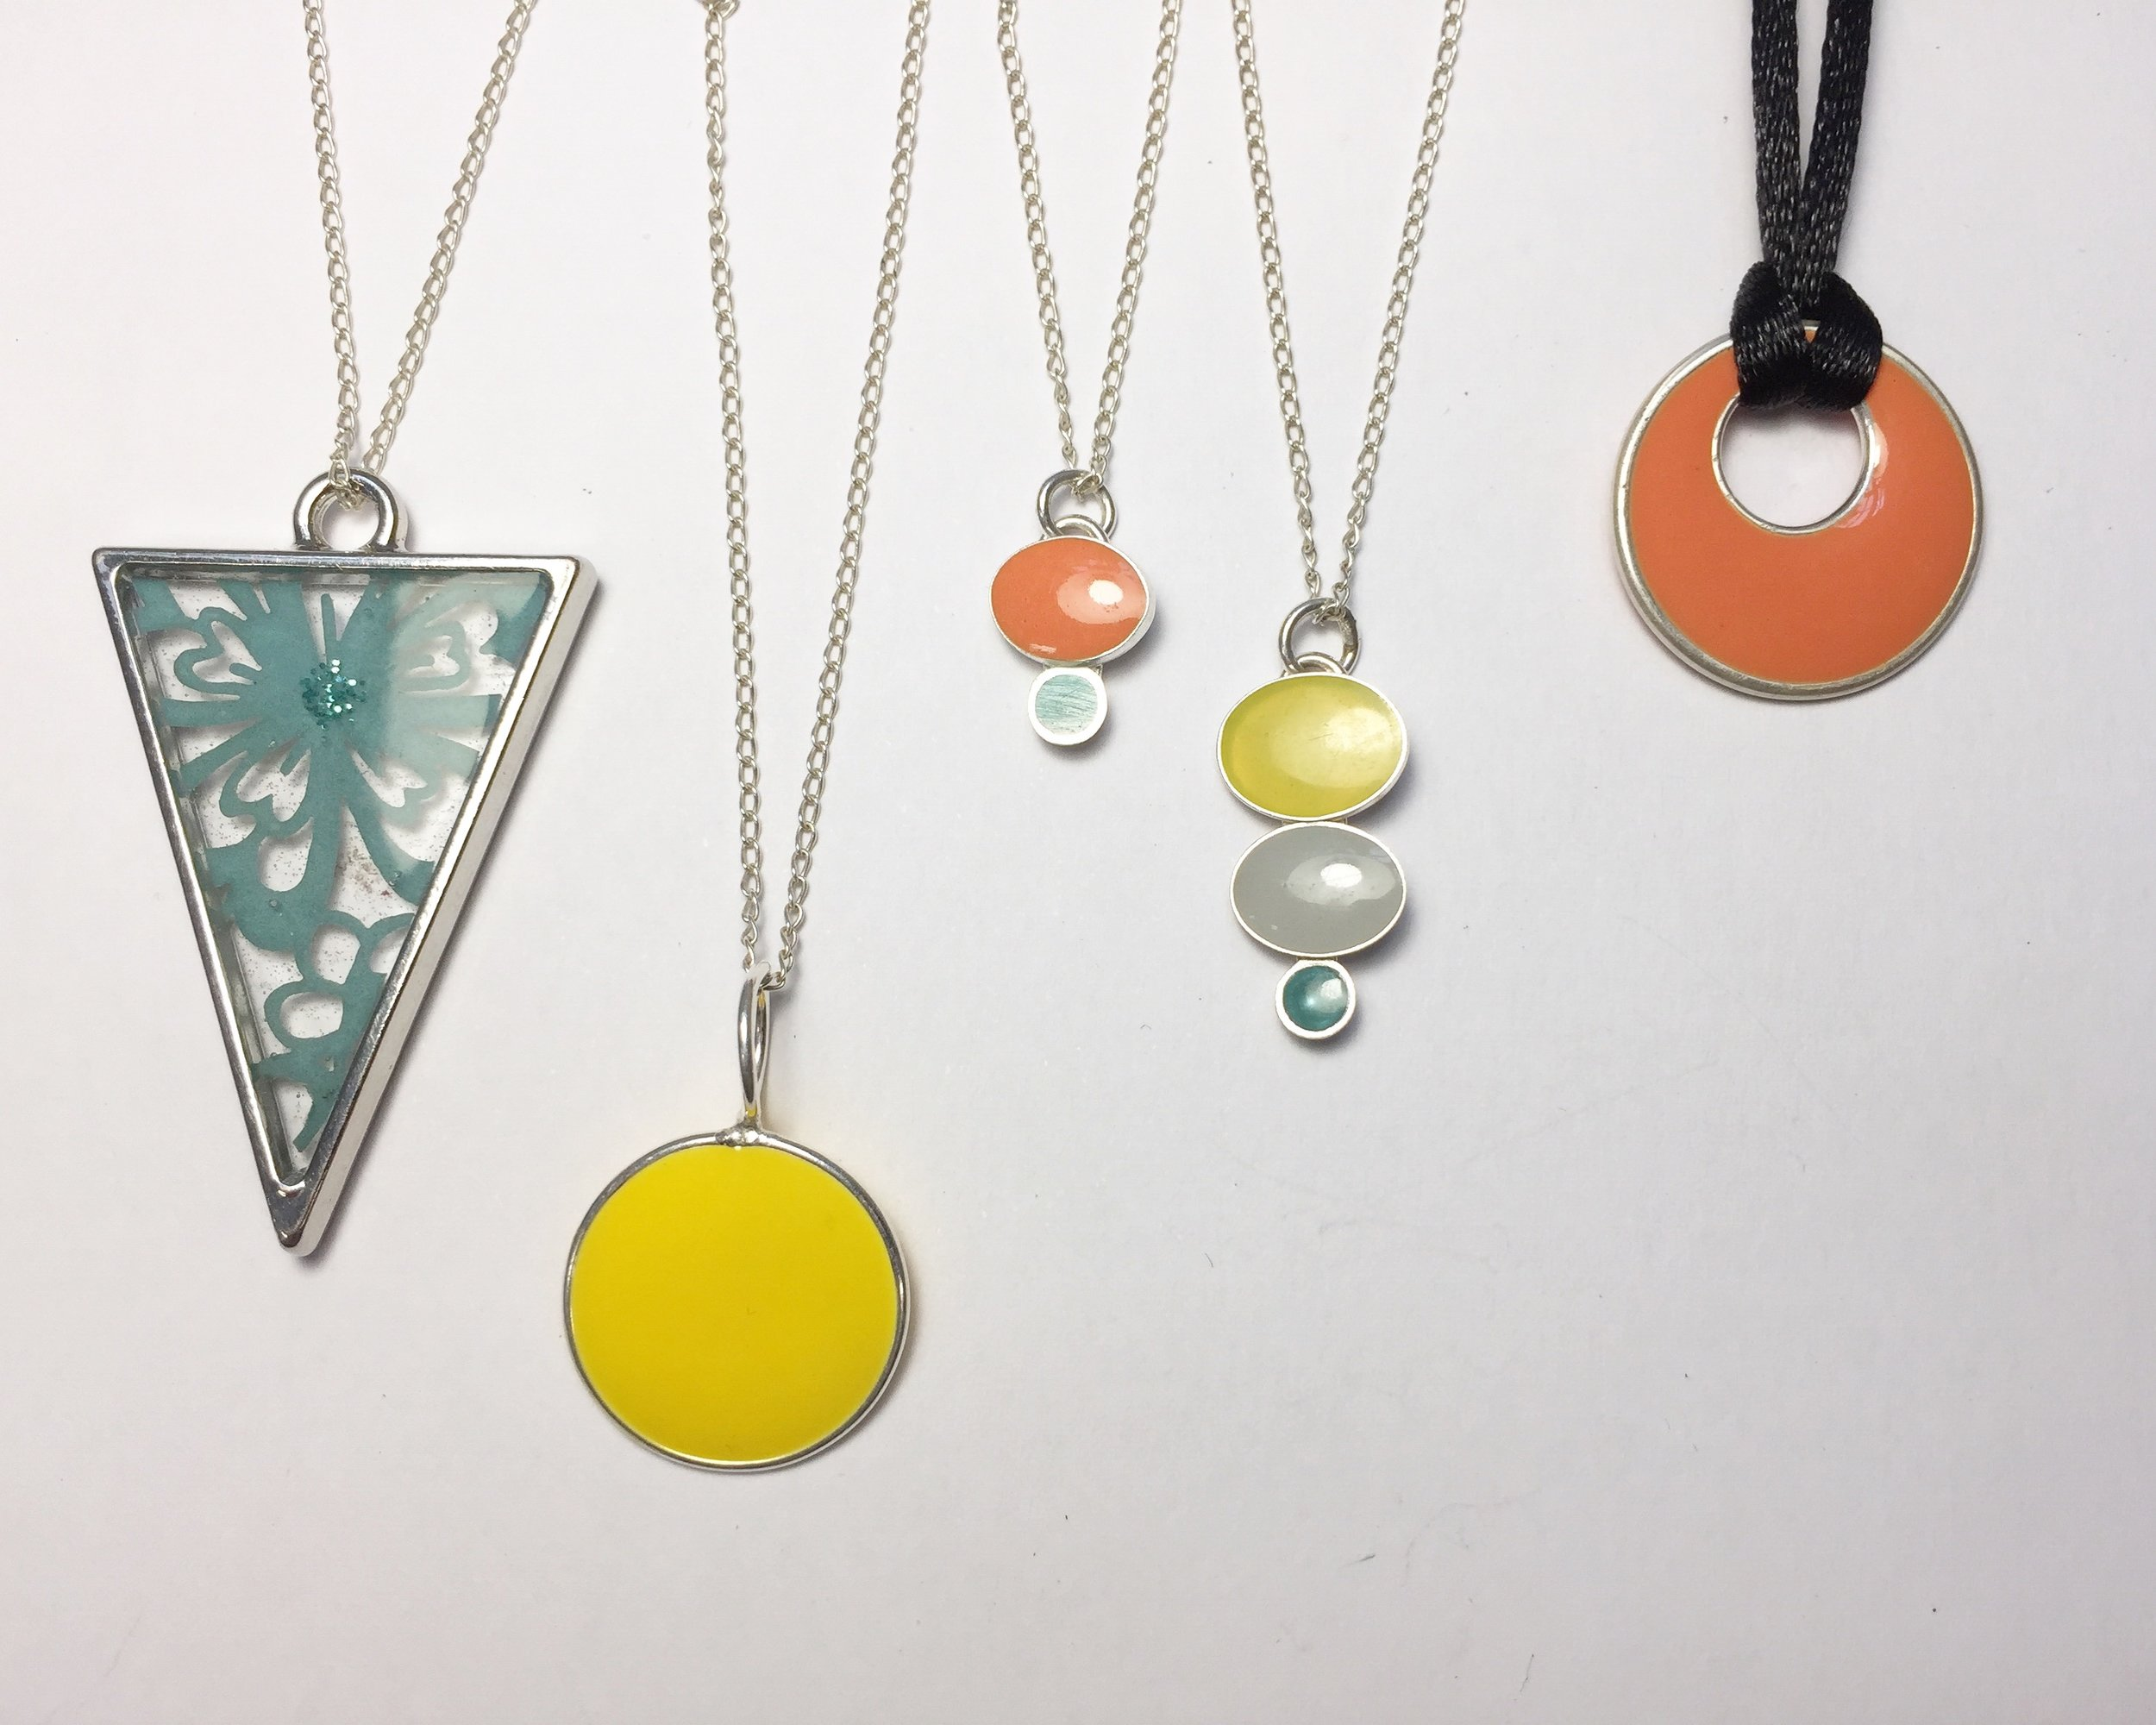 bg-resin-silver-jewellery-course.jpeg